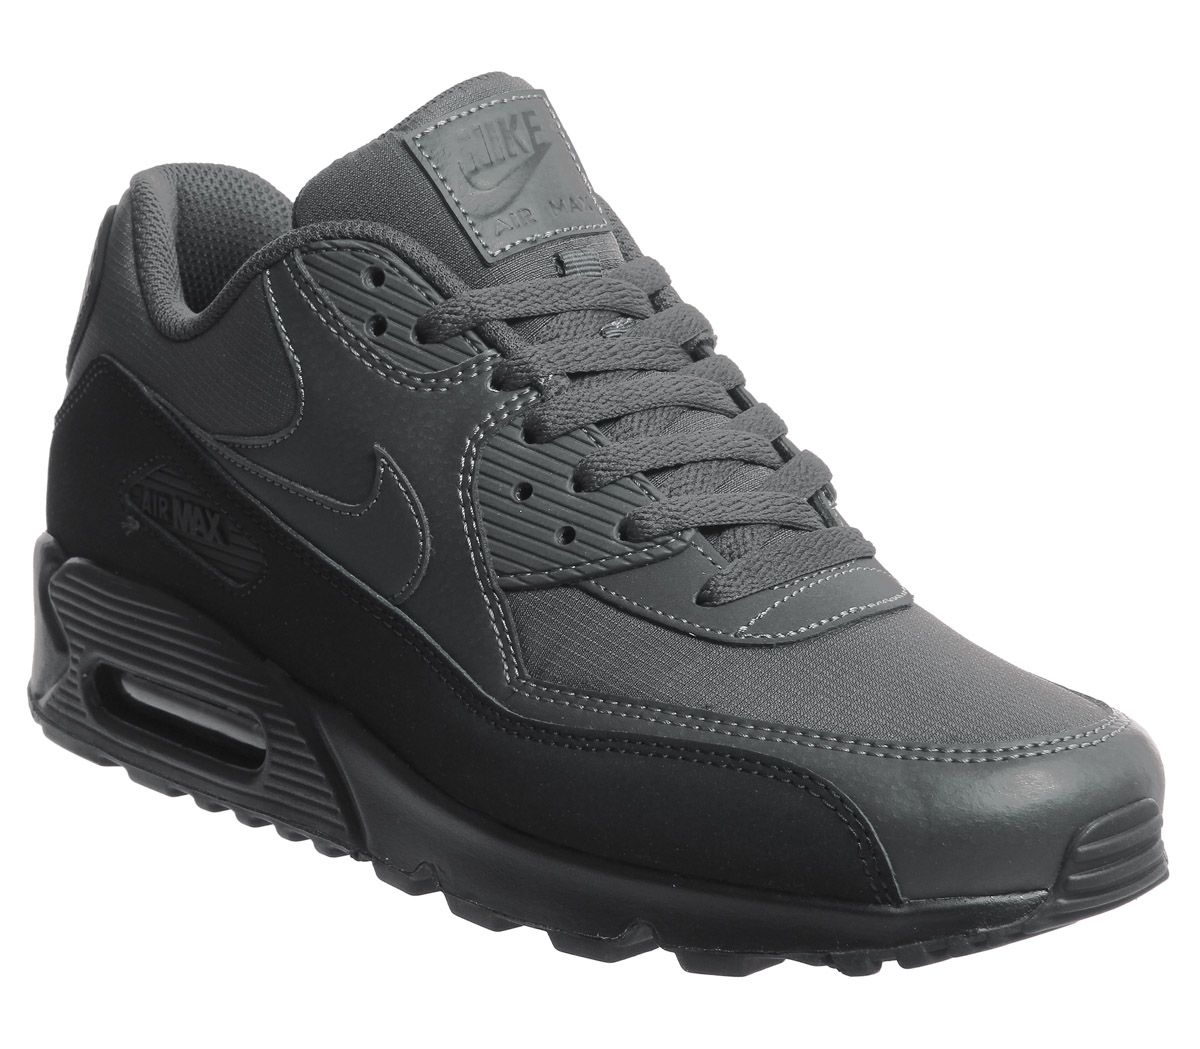 5d1613b65c Nike Air Max 90 Trainers Black Anthracite - His trainers